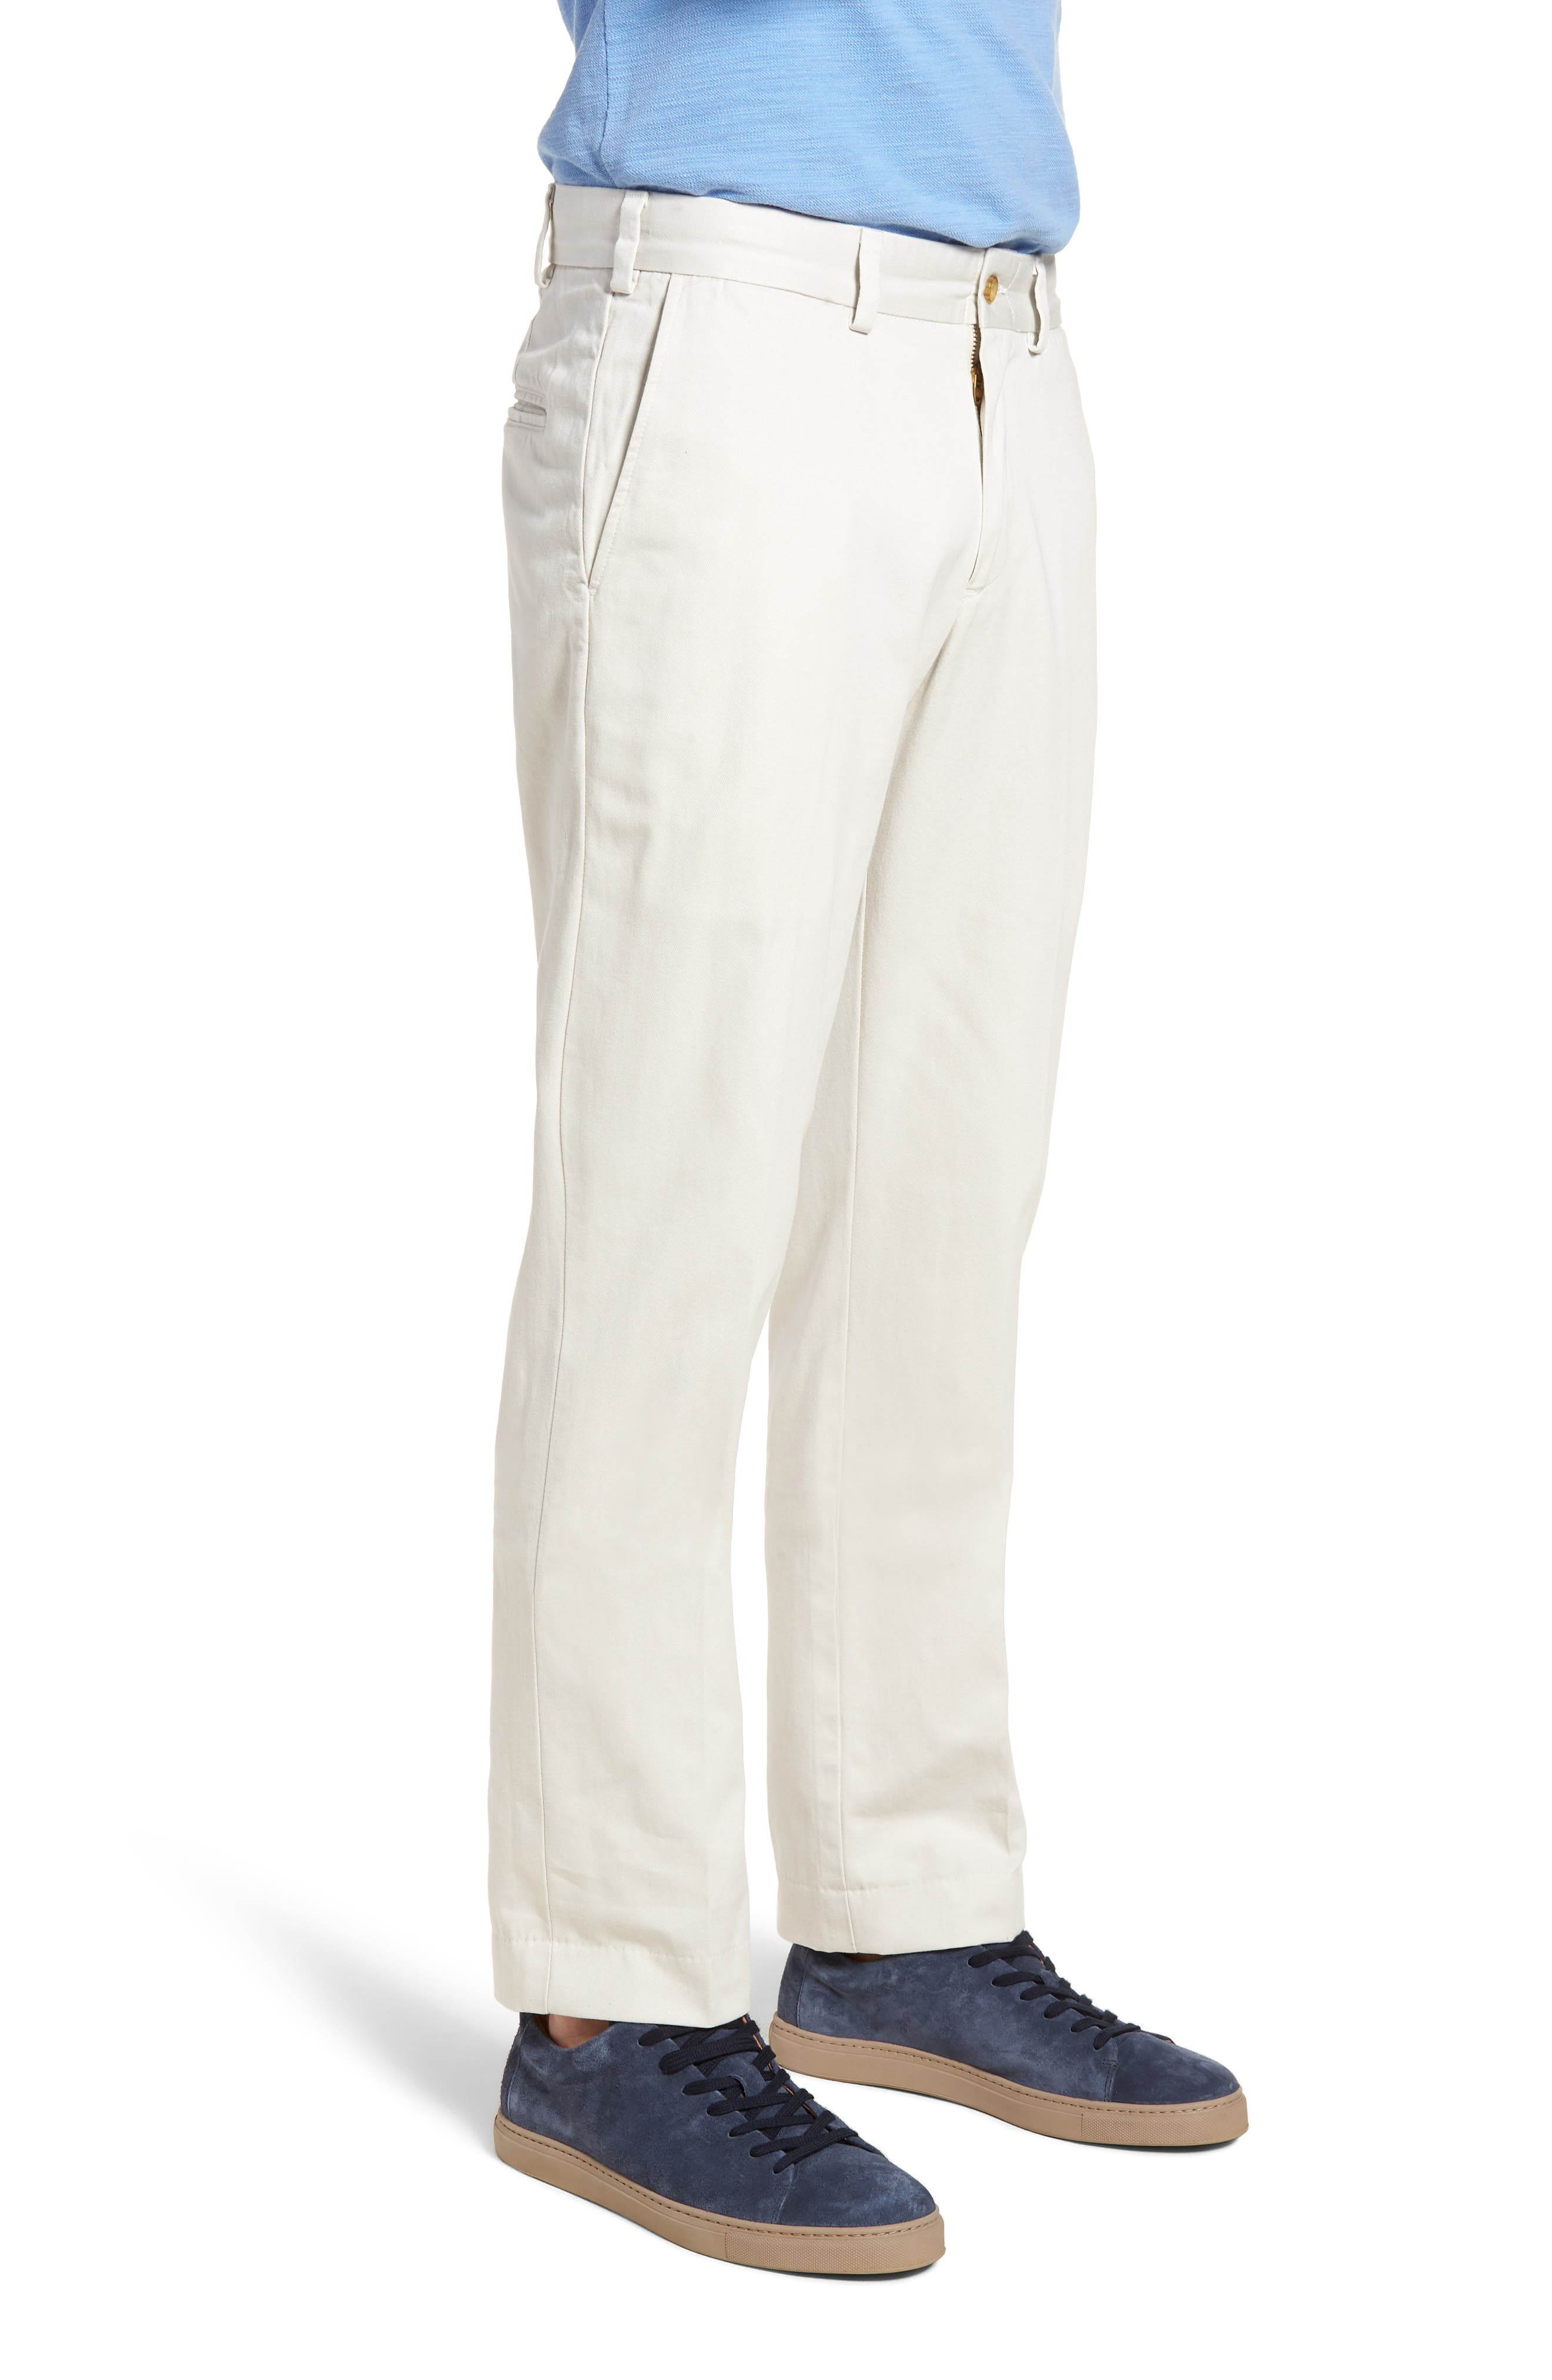 M3 Straight Fit Flat Front Vintage Twill Pants,                             Alternate thumbnail 3, color,                             Stone